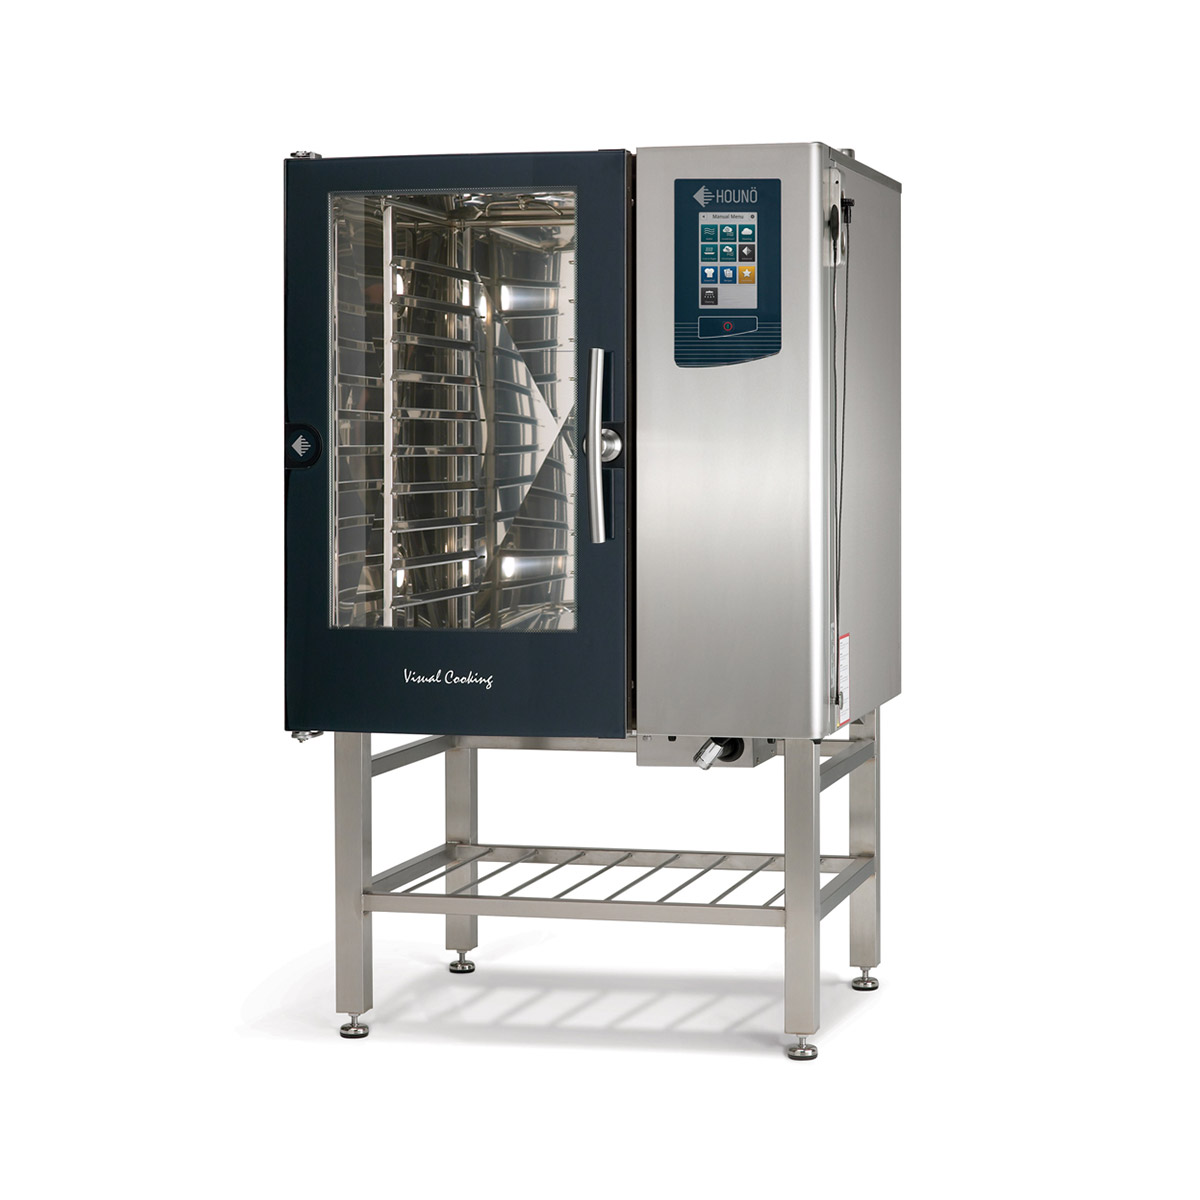 Houno C & CPE 1.10 Combi Oven Electric 10 Tray Oven – 4 Year Warranty